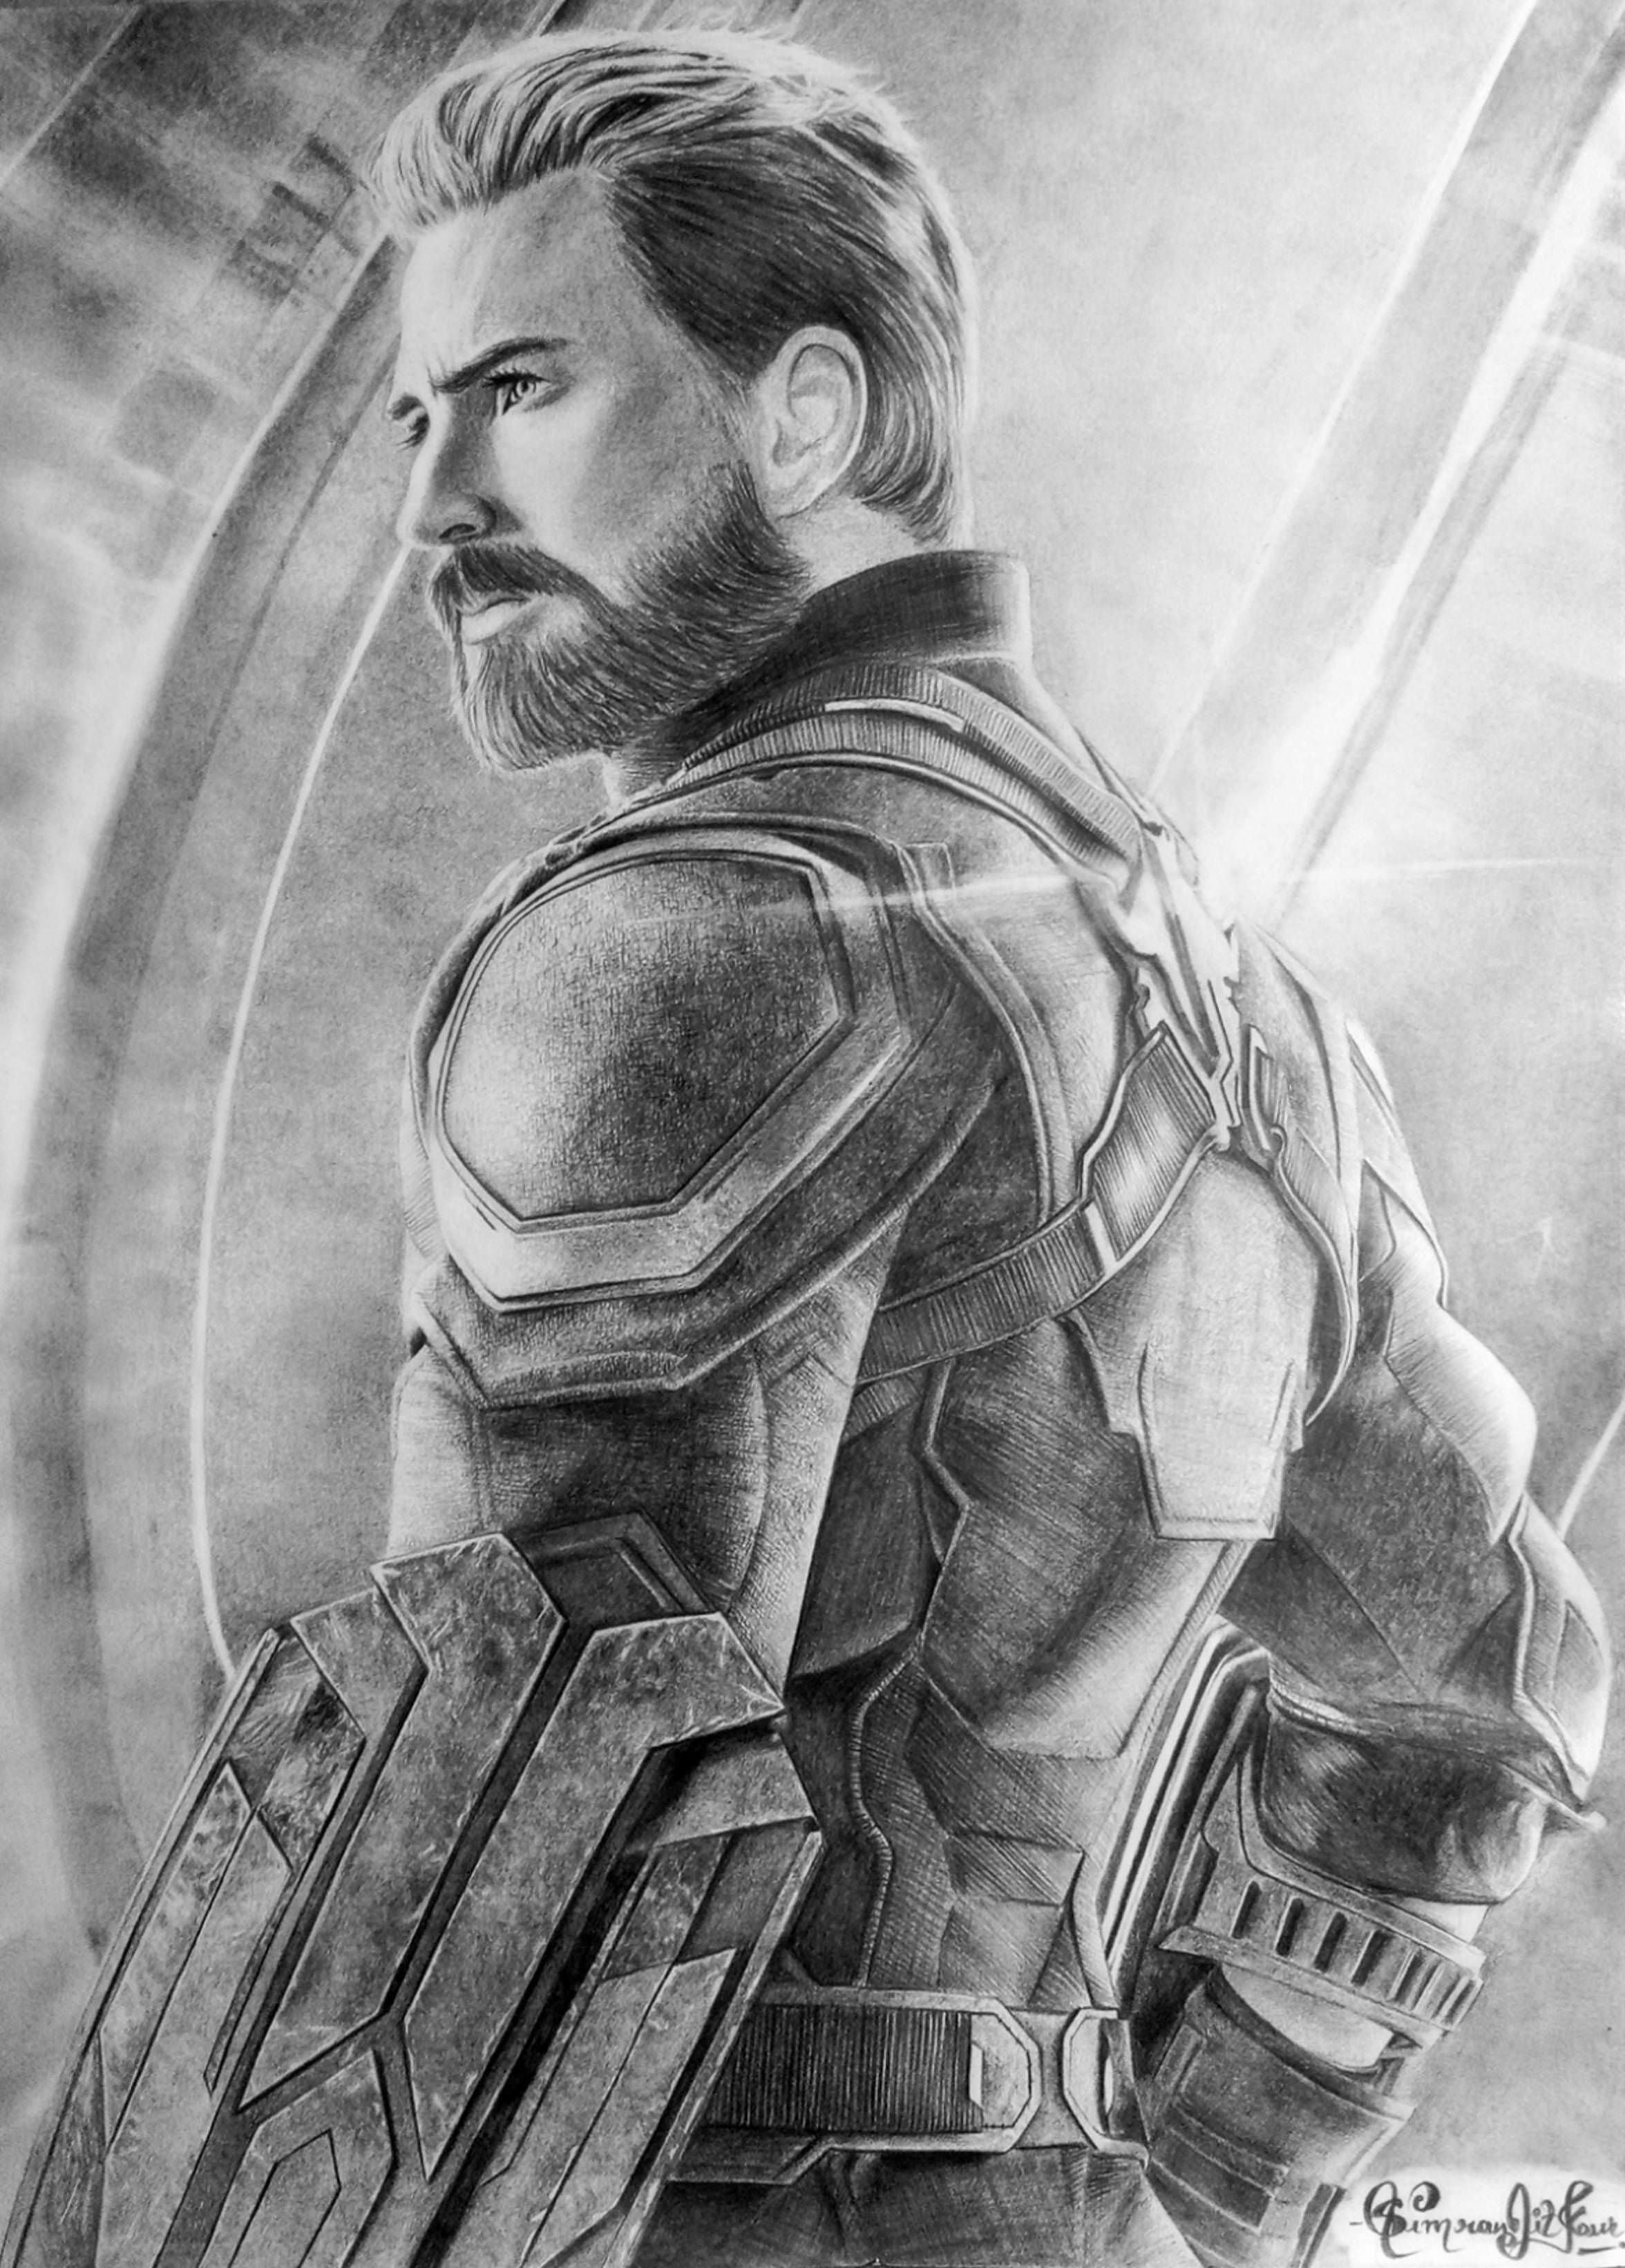 Chris evans as captain america pencil sketch ig